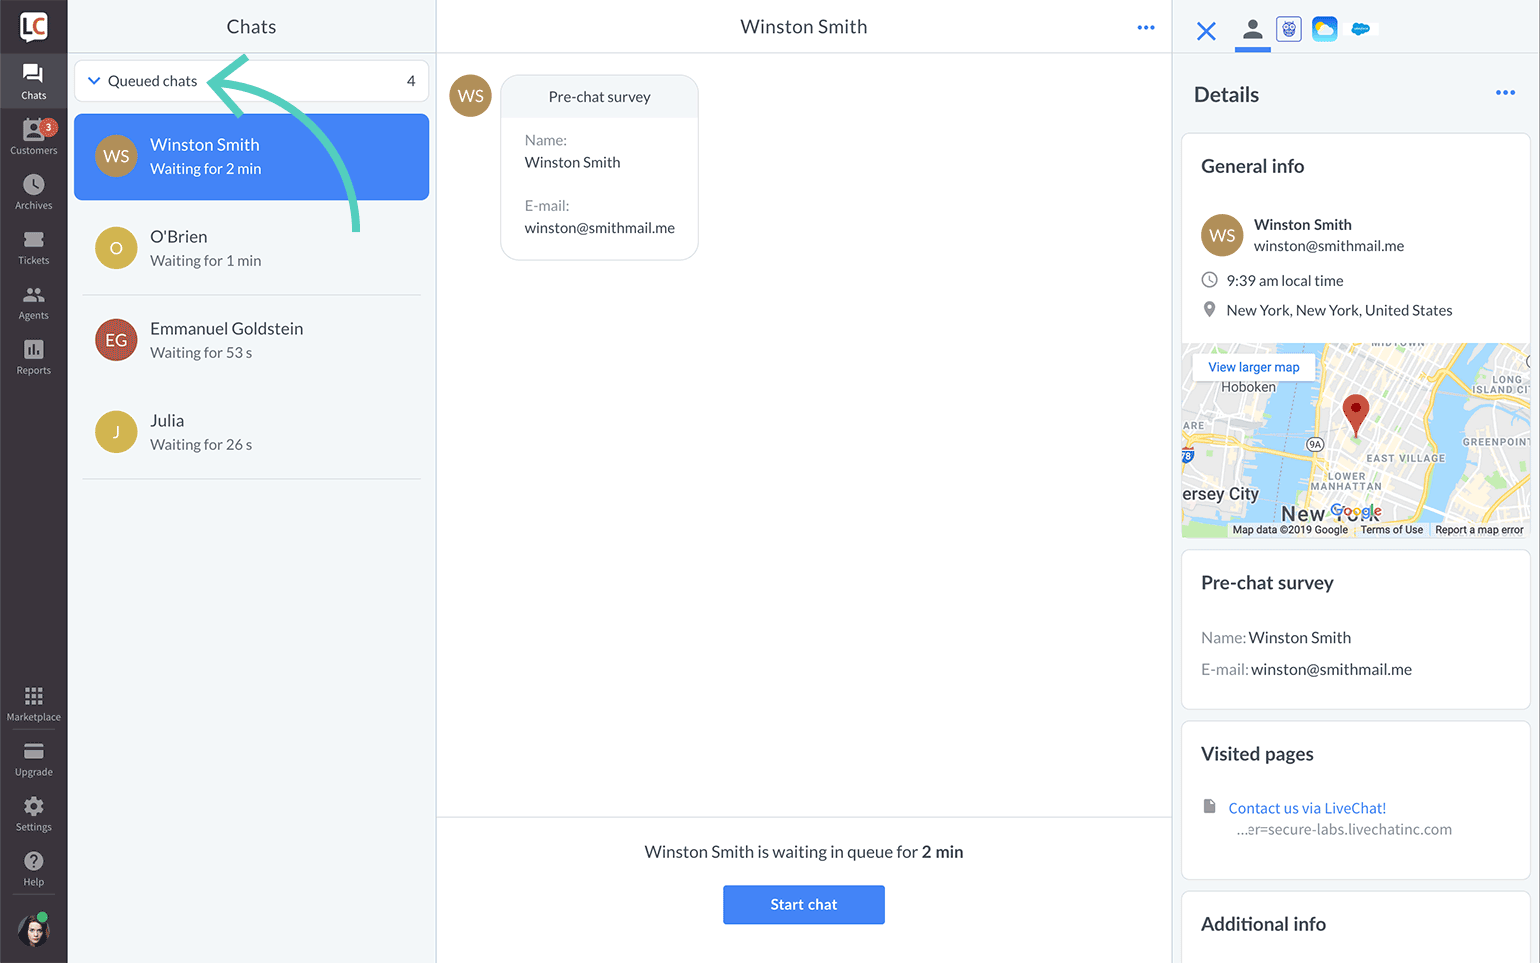 Start a chat from the queue